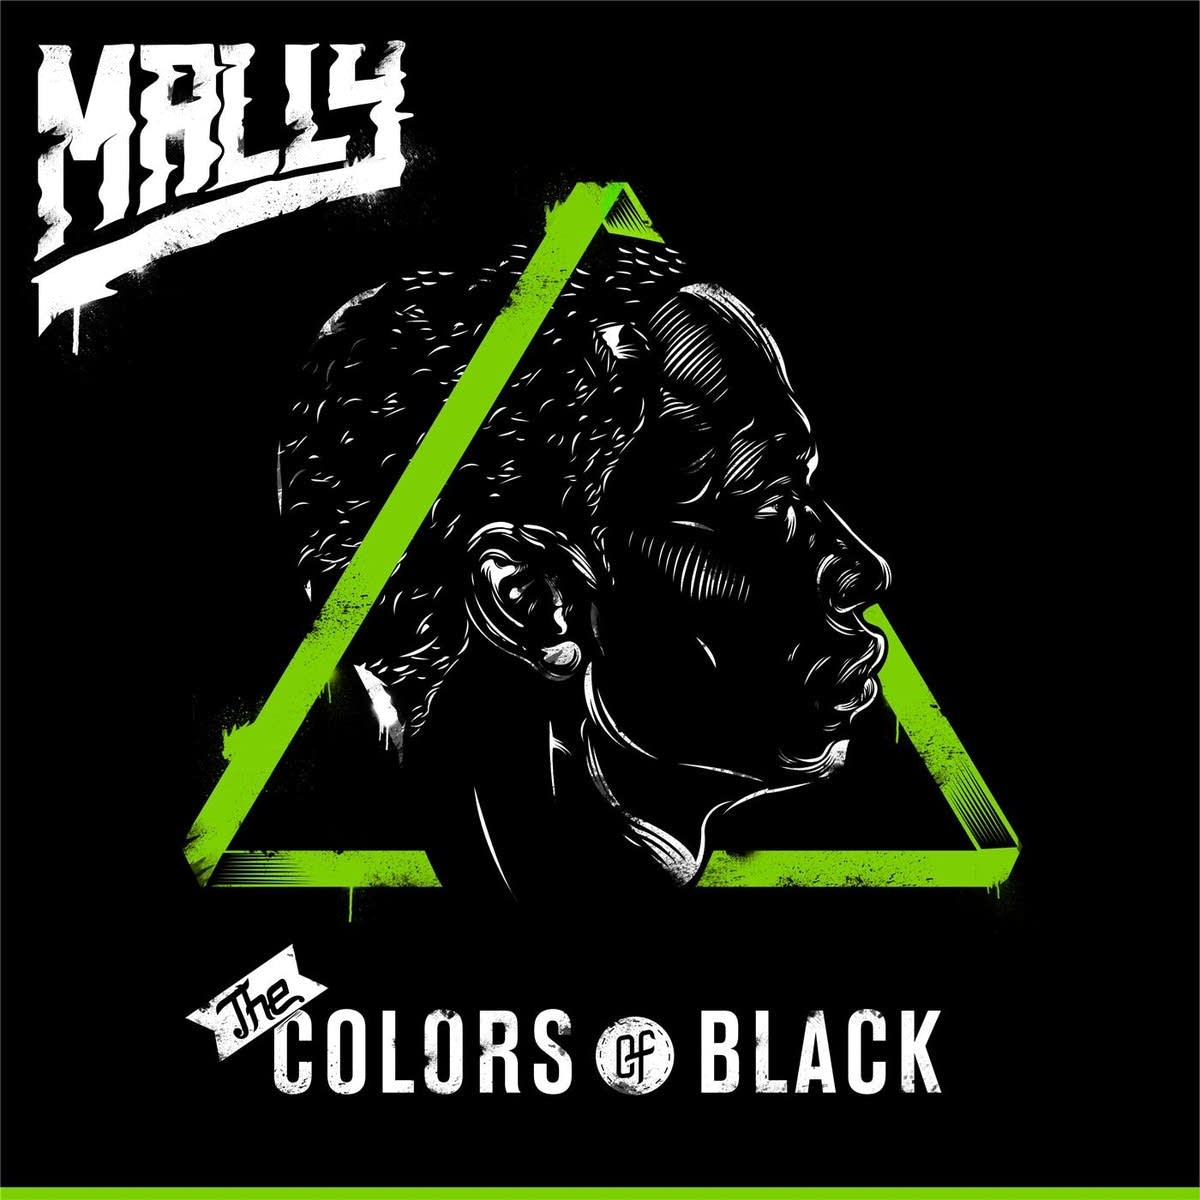 Mally - The Colors of Black